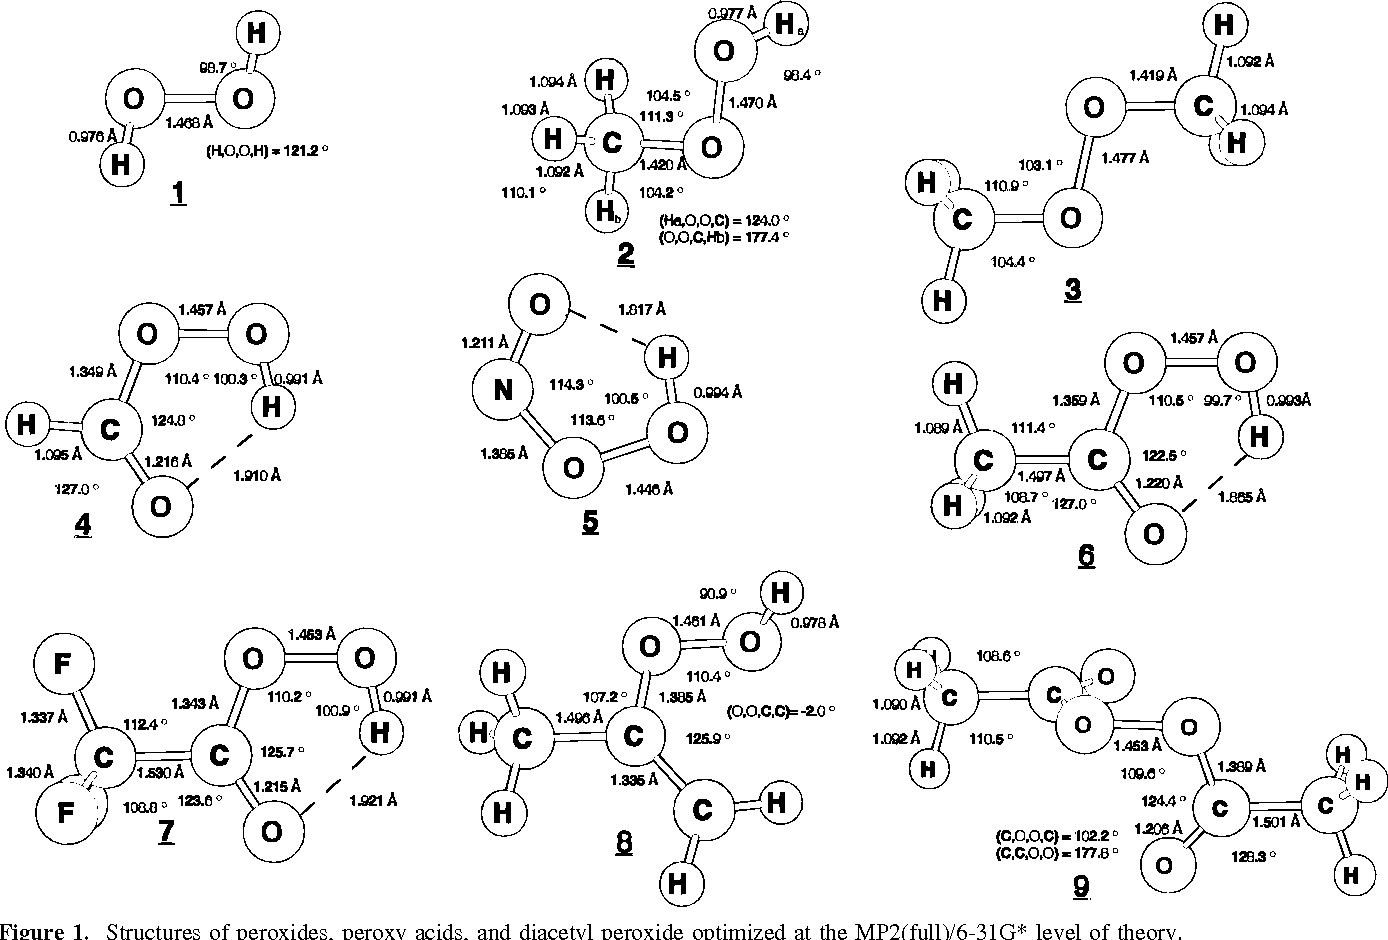 Table 2 from A Reassessment of the Bond Dissociation